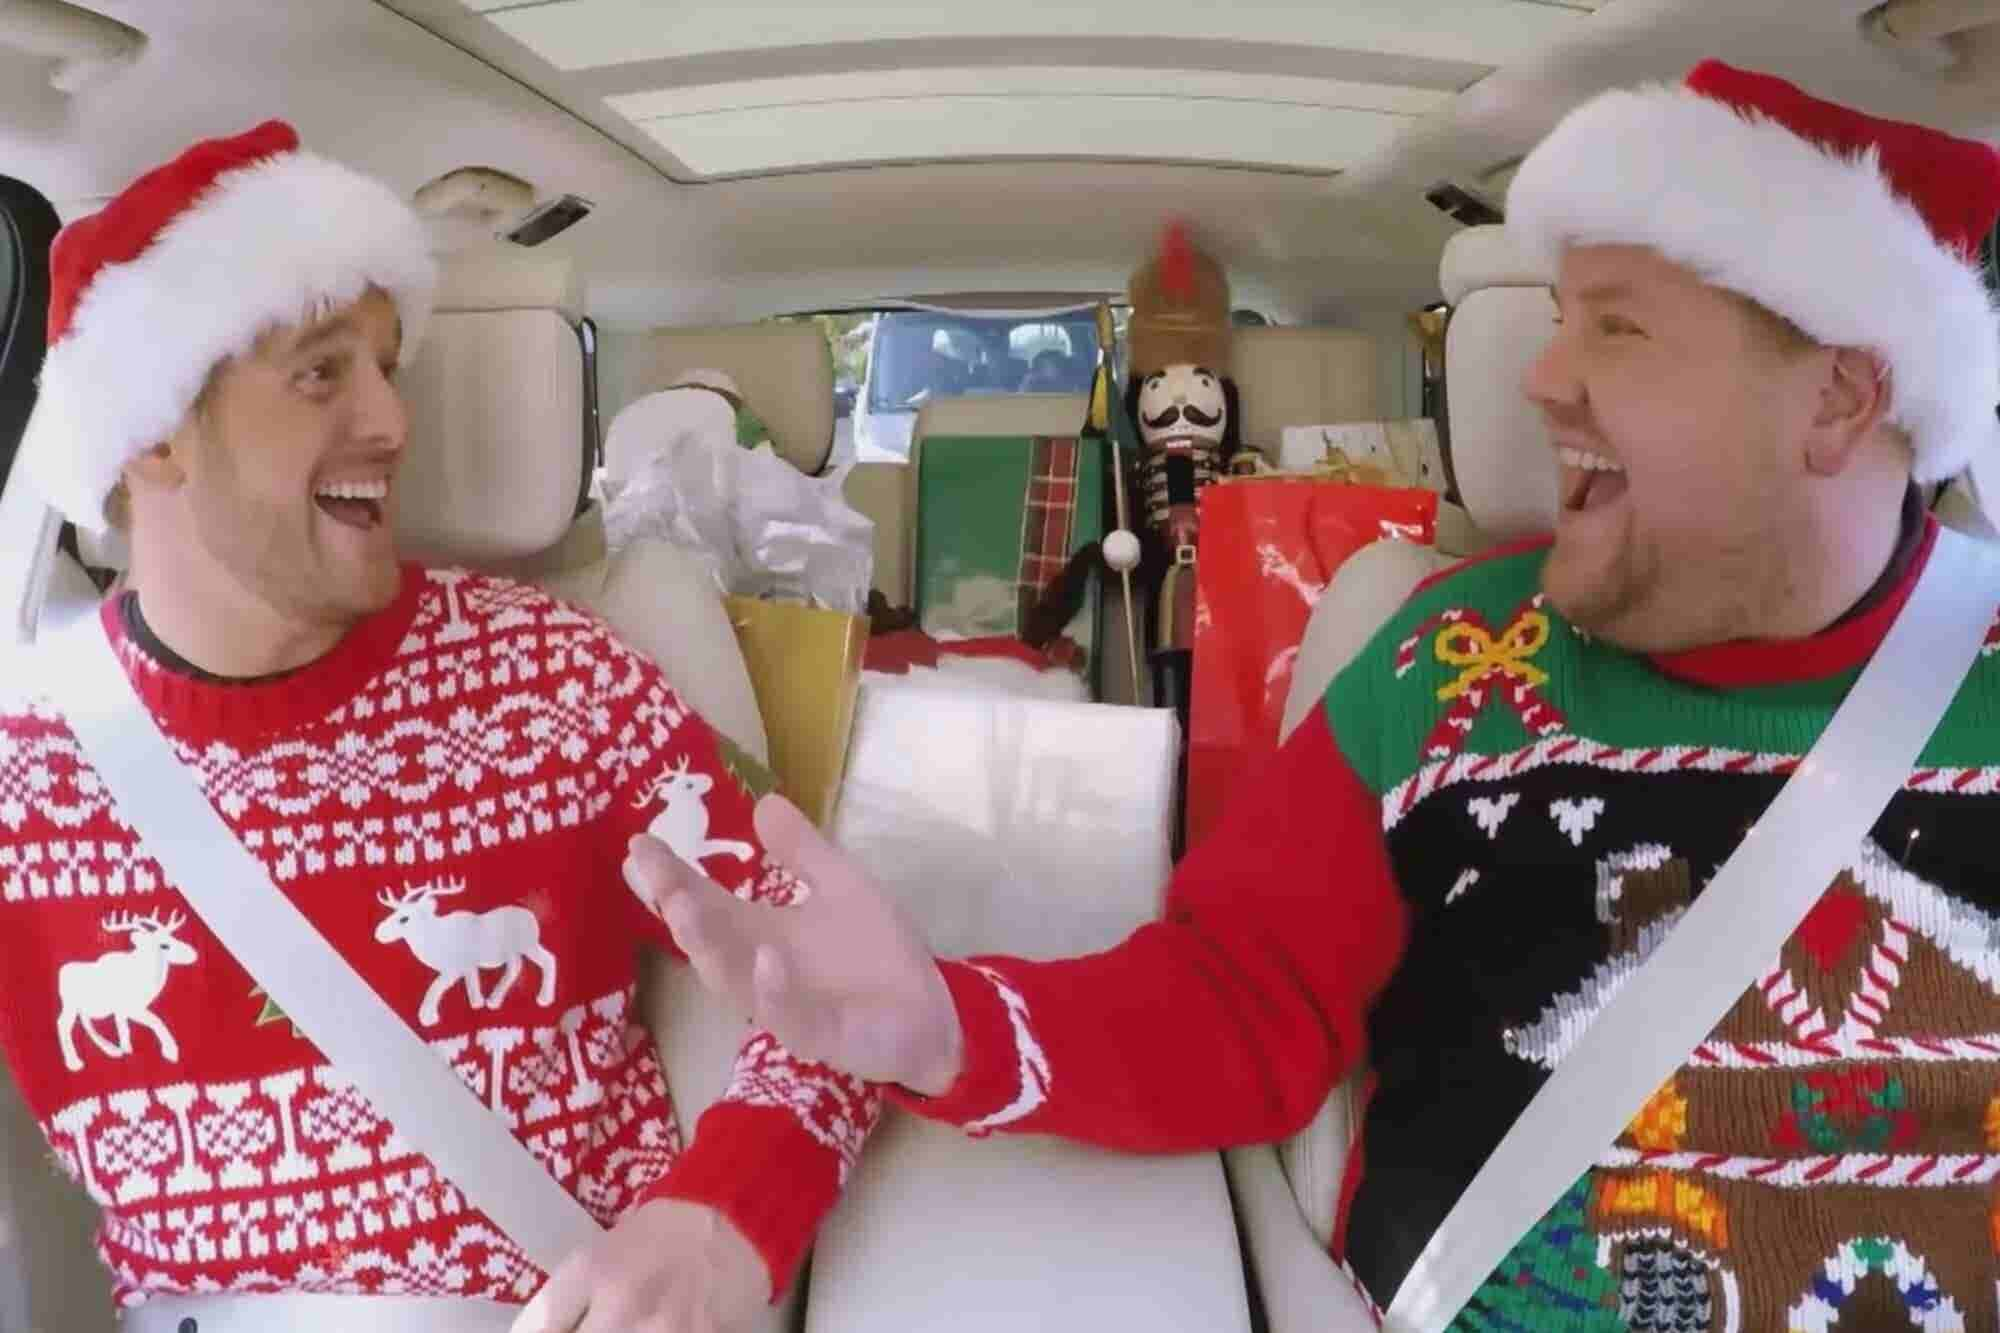 Watch James Corden Celebrate the Holiday Season with Everyone From Migos to Paul McCartney